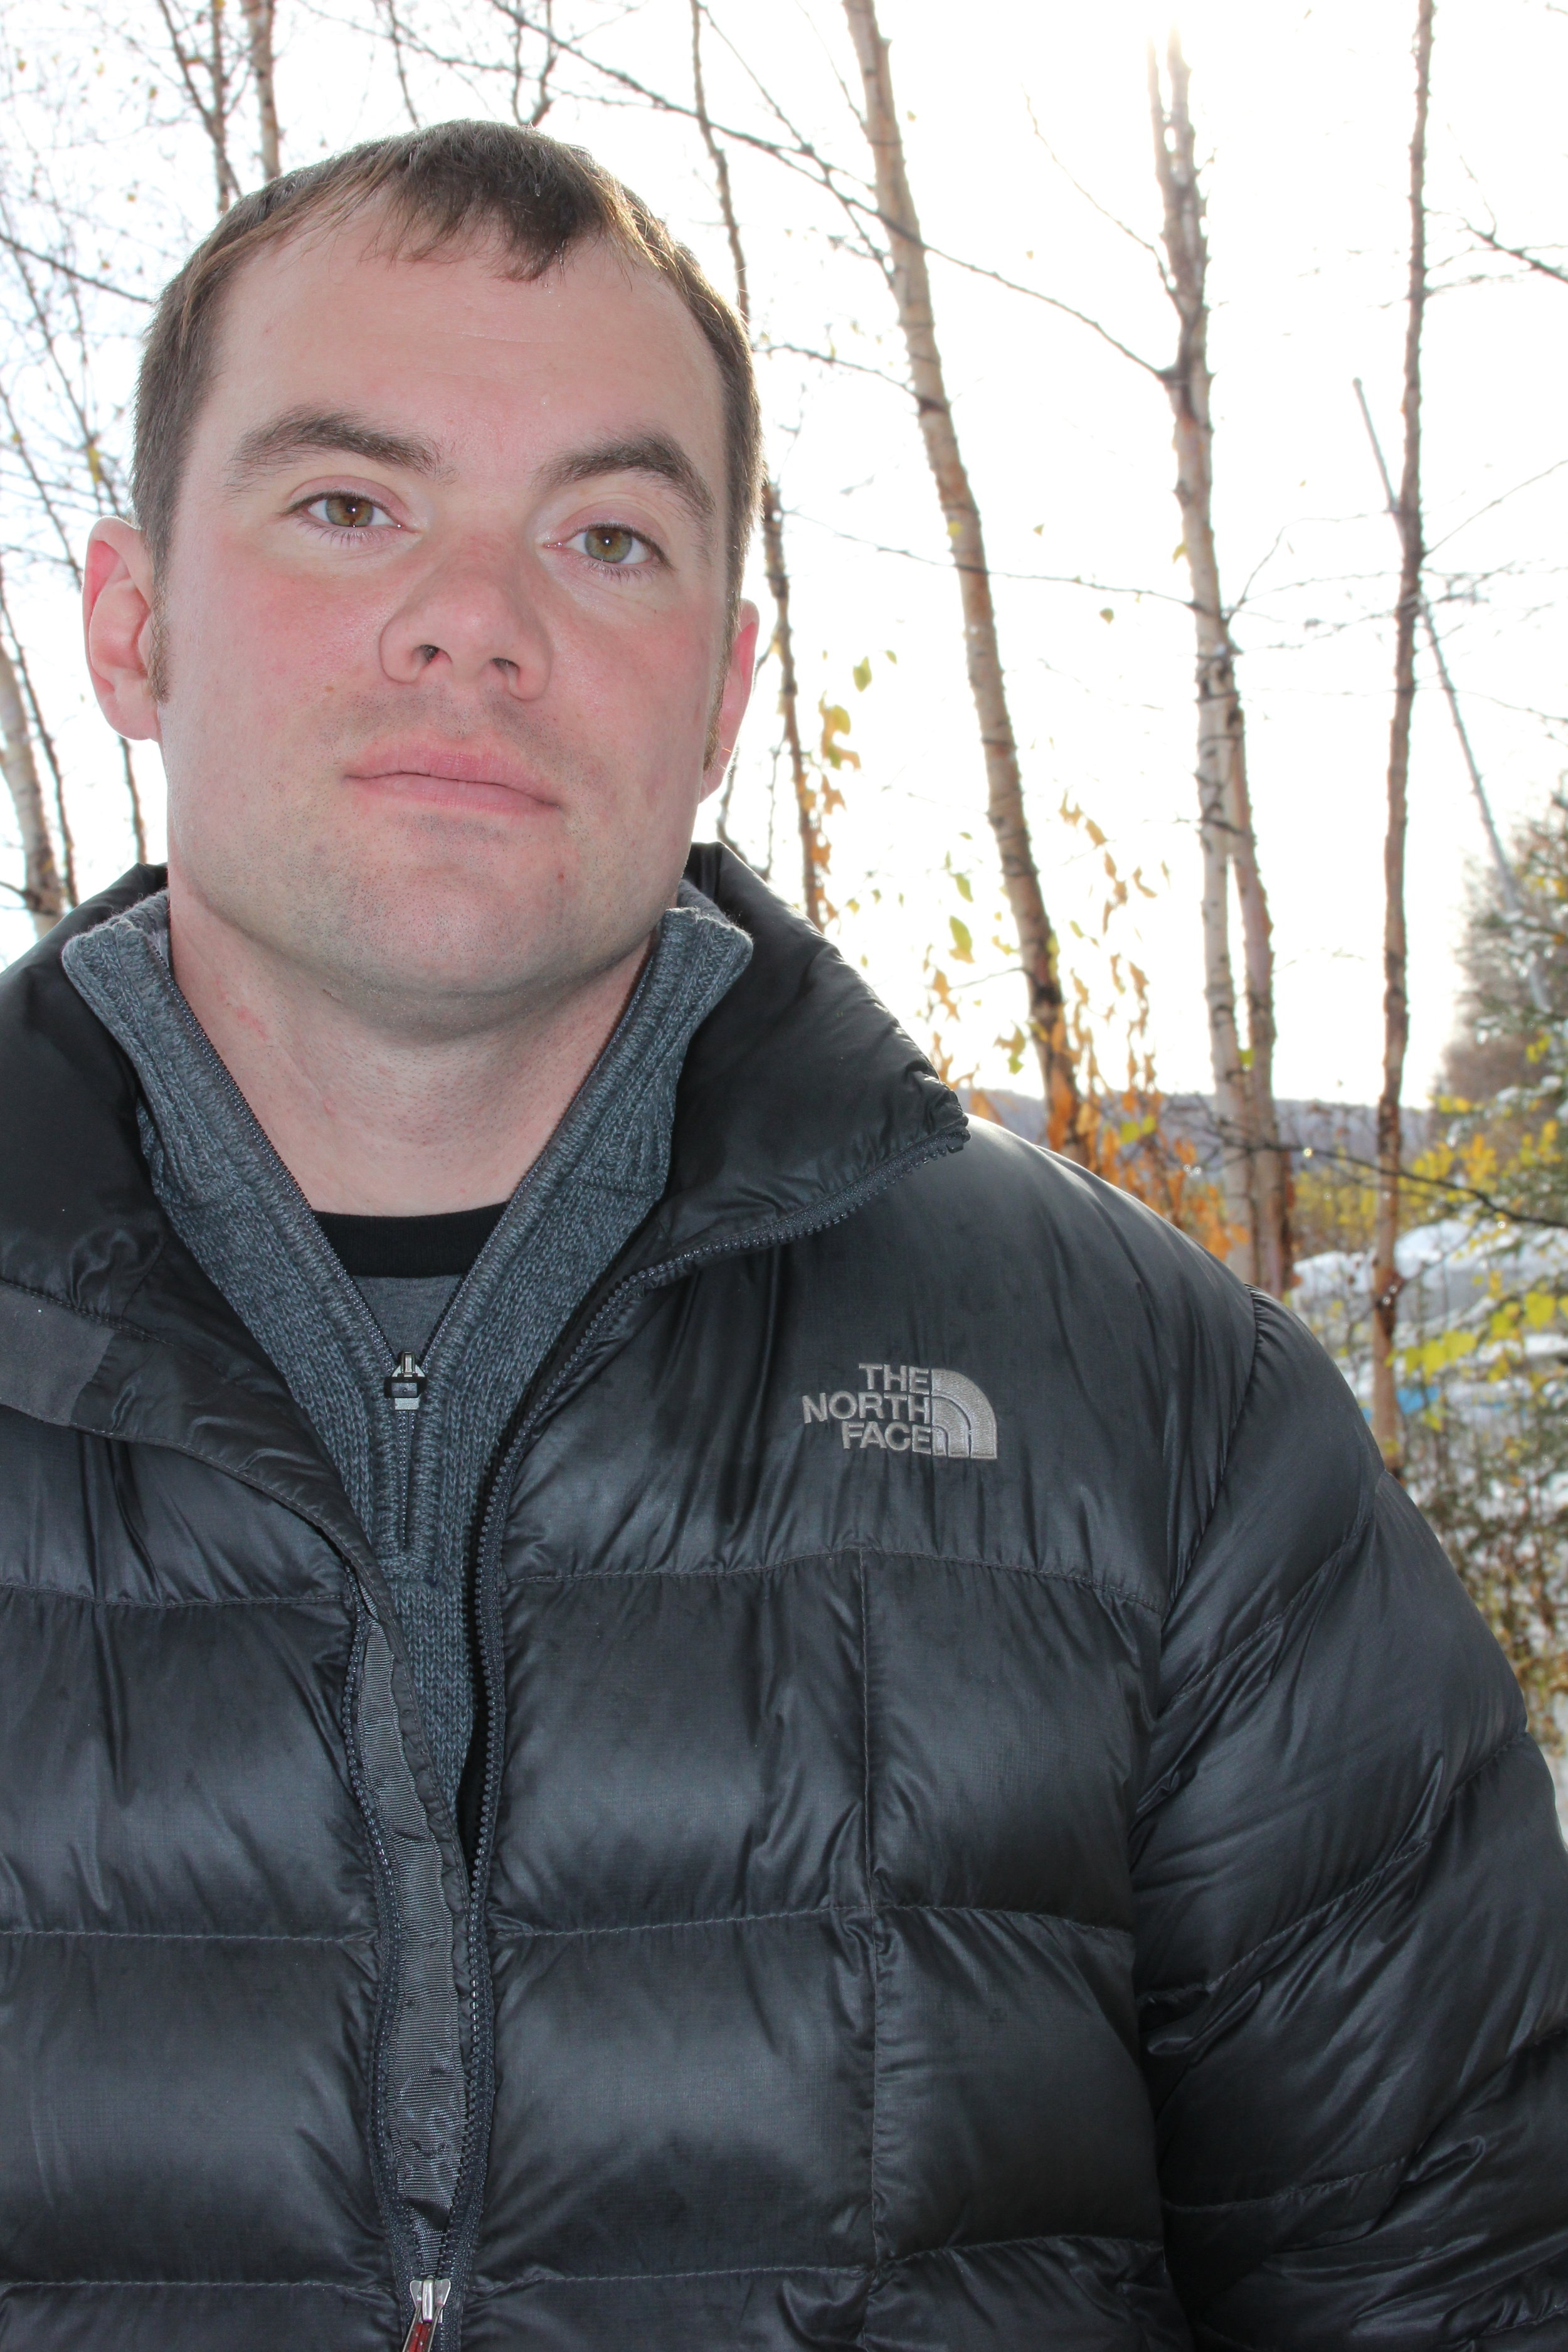 Shane Powers Outstanding EMS Award     Fairbanks Fire Department    Shane Powers has been with the City of Fairbanks Fire Department for over 10 years. He has also been a wildland firefighter in the medic program for 15 years. He was born and raised in Fairbanks, where he graduated from West Valley in 1998. Prior to serving with the Fairbanks Fire Department, he was a paramedic in Billings, Montana for 3 years. He even did a stint in Antarctica before returning to Fairbanks. One of the things Shane likes most about his job is the problem solving challenges.  He figured that it his problem solving talents would be best used to help people, so he decided to become a firefighter shortly after graduating high school. He has a consistent drive to help the community, and was previously named State Firefighter of the Year in 2014.